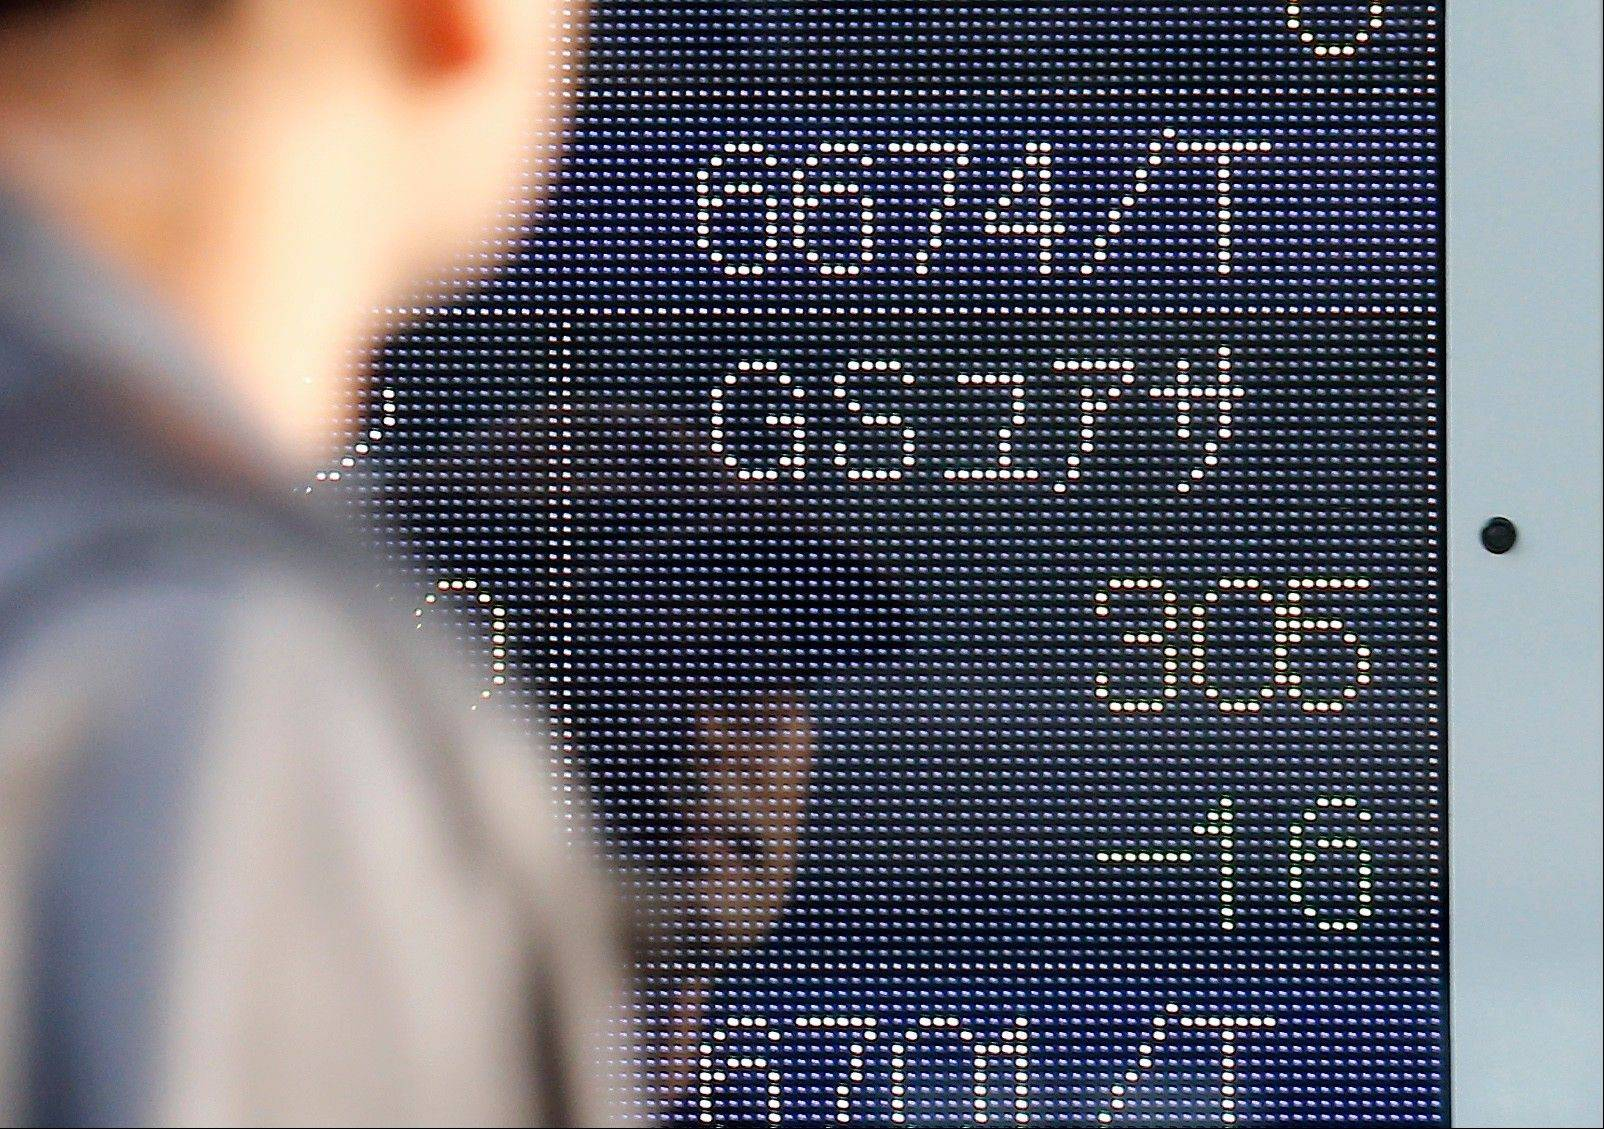 A man looks at the share price of Japanese manufacturer GS Yuasa that closed at 305 yen, 16 yen lower than the previous day trading, on the electronic stock board of a securities firm in Tokyo Thursday, Jan. 17, 2013. GS Yuasa is responsible for the battery of the Boeing's new 787 of which safety and reliability came into question again Wednesday when battery problems led to an emergency landing of an All Nippon Airlines, the biggest customers for the plane, temporarily grounded all 24 787s they own. Boeing shares fell more than 3 percent. (AP Photo/Koji Sasahara)